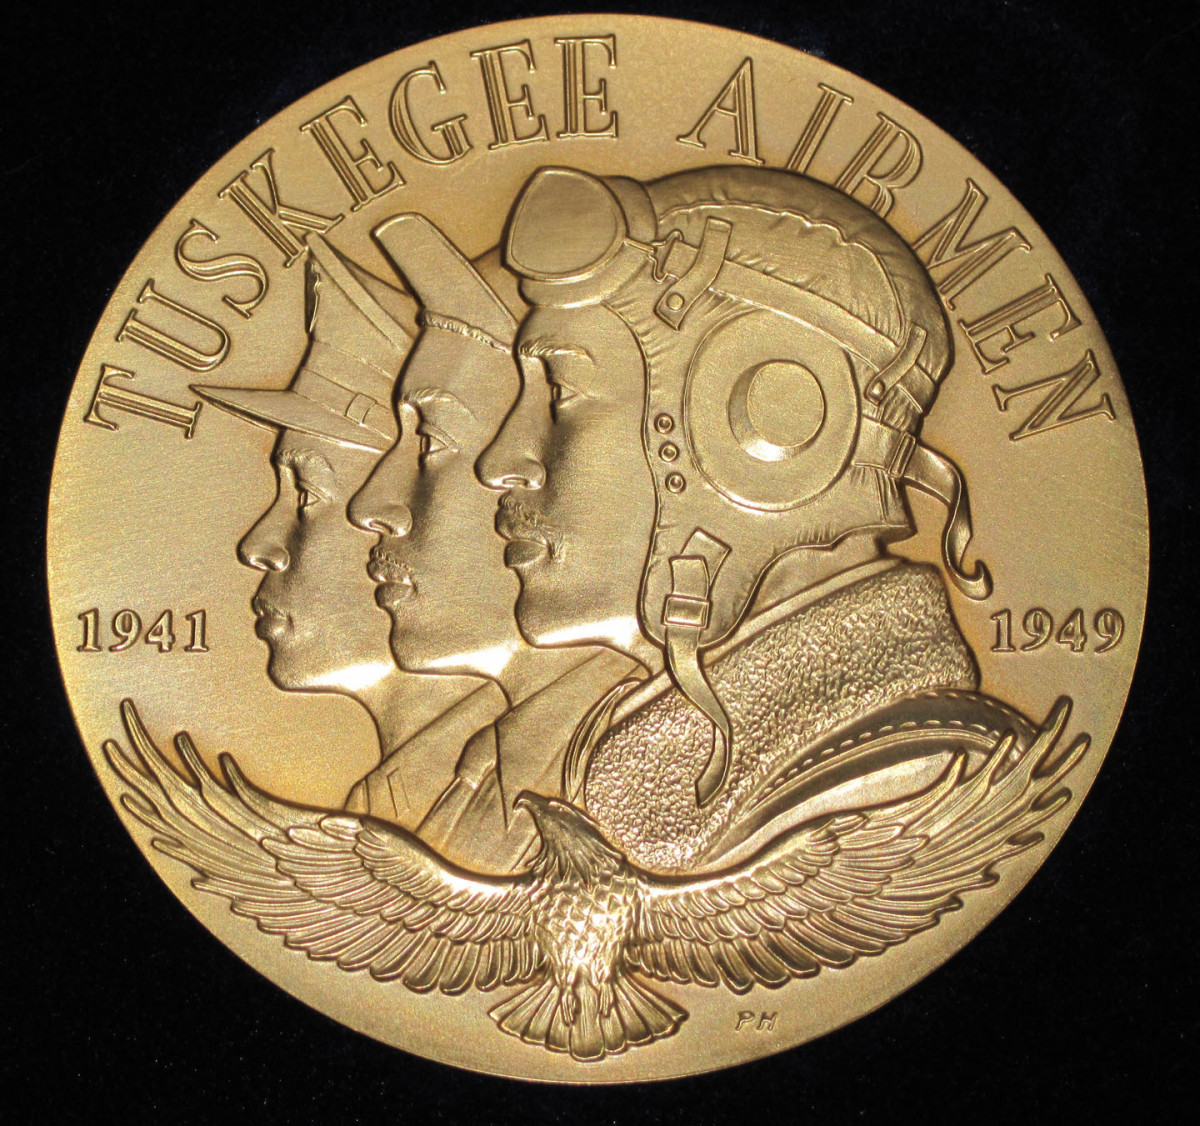 Congressional Gold Medal awarded in 2007 to the airmen or their widows.